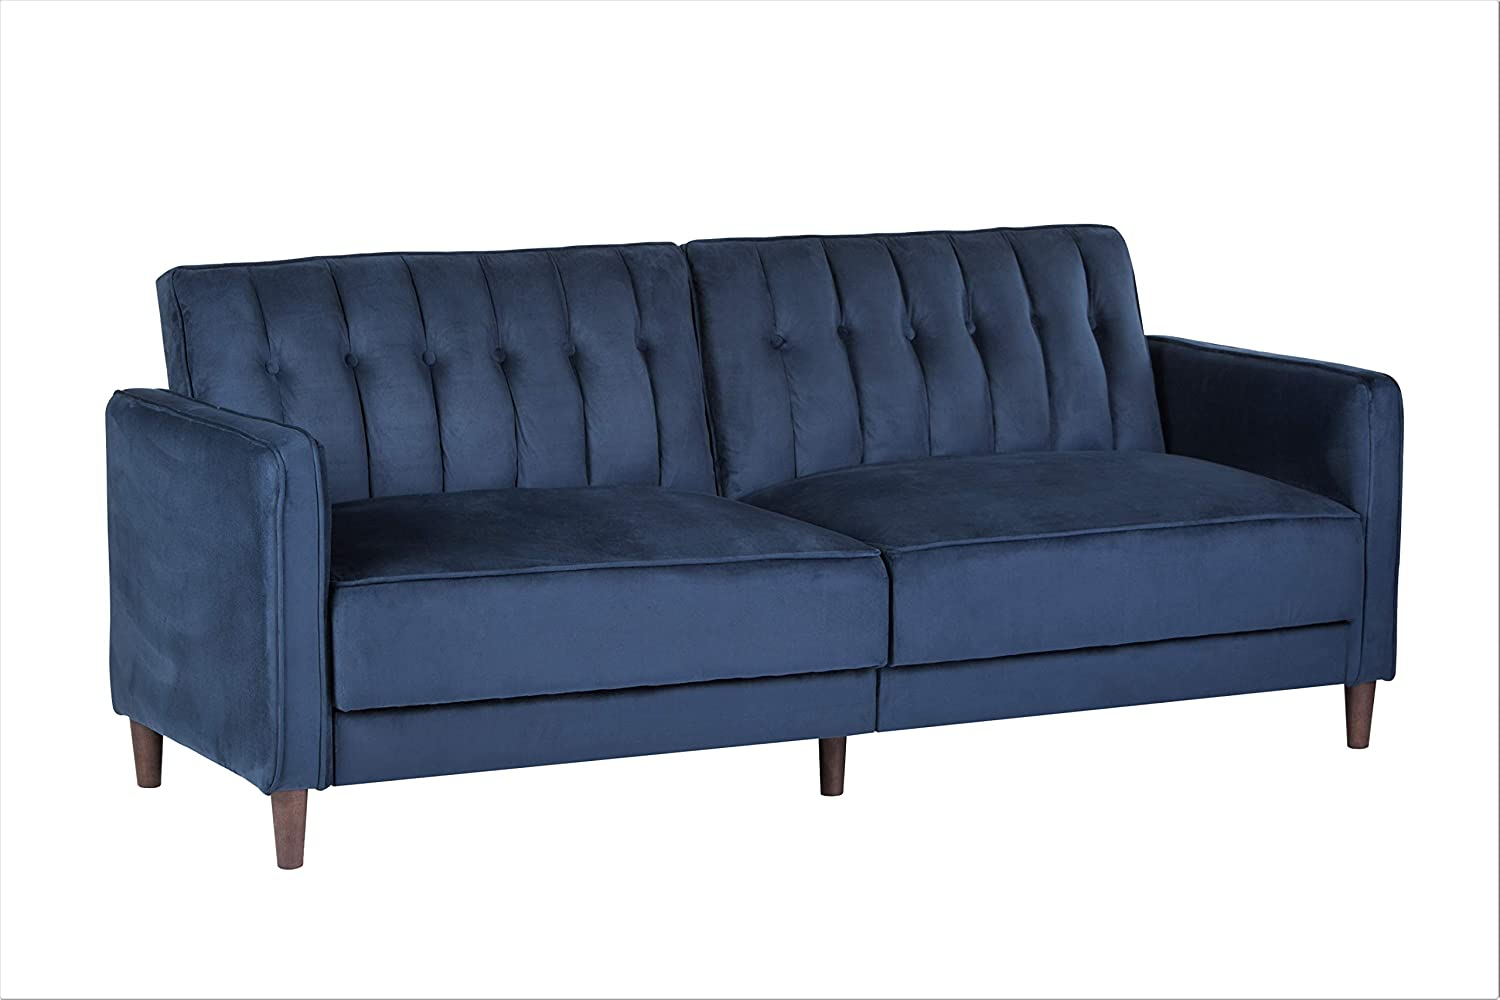 Container Furniture Direct SB-9028 Anastasia Mid Century Modern Velvet  Tufted Convertible Sleeper Sofa, 81\